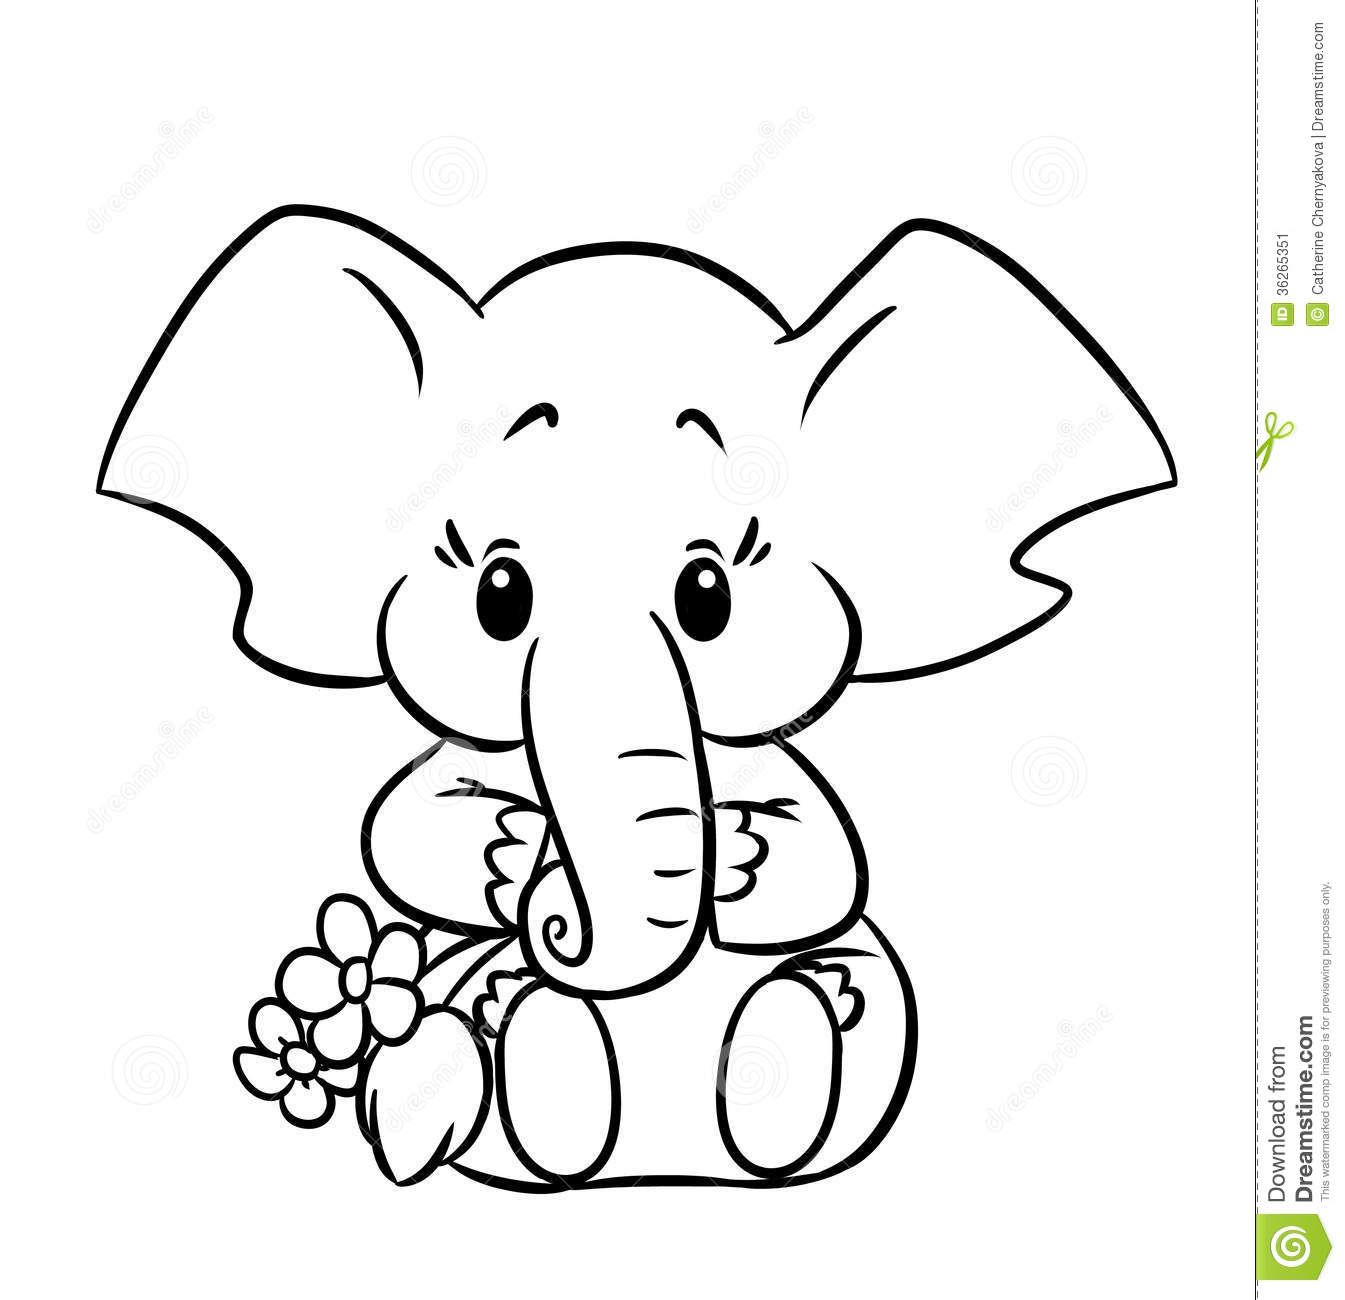 Little elephant  Elephant coloring page, Baby elephant drawing